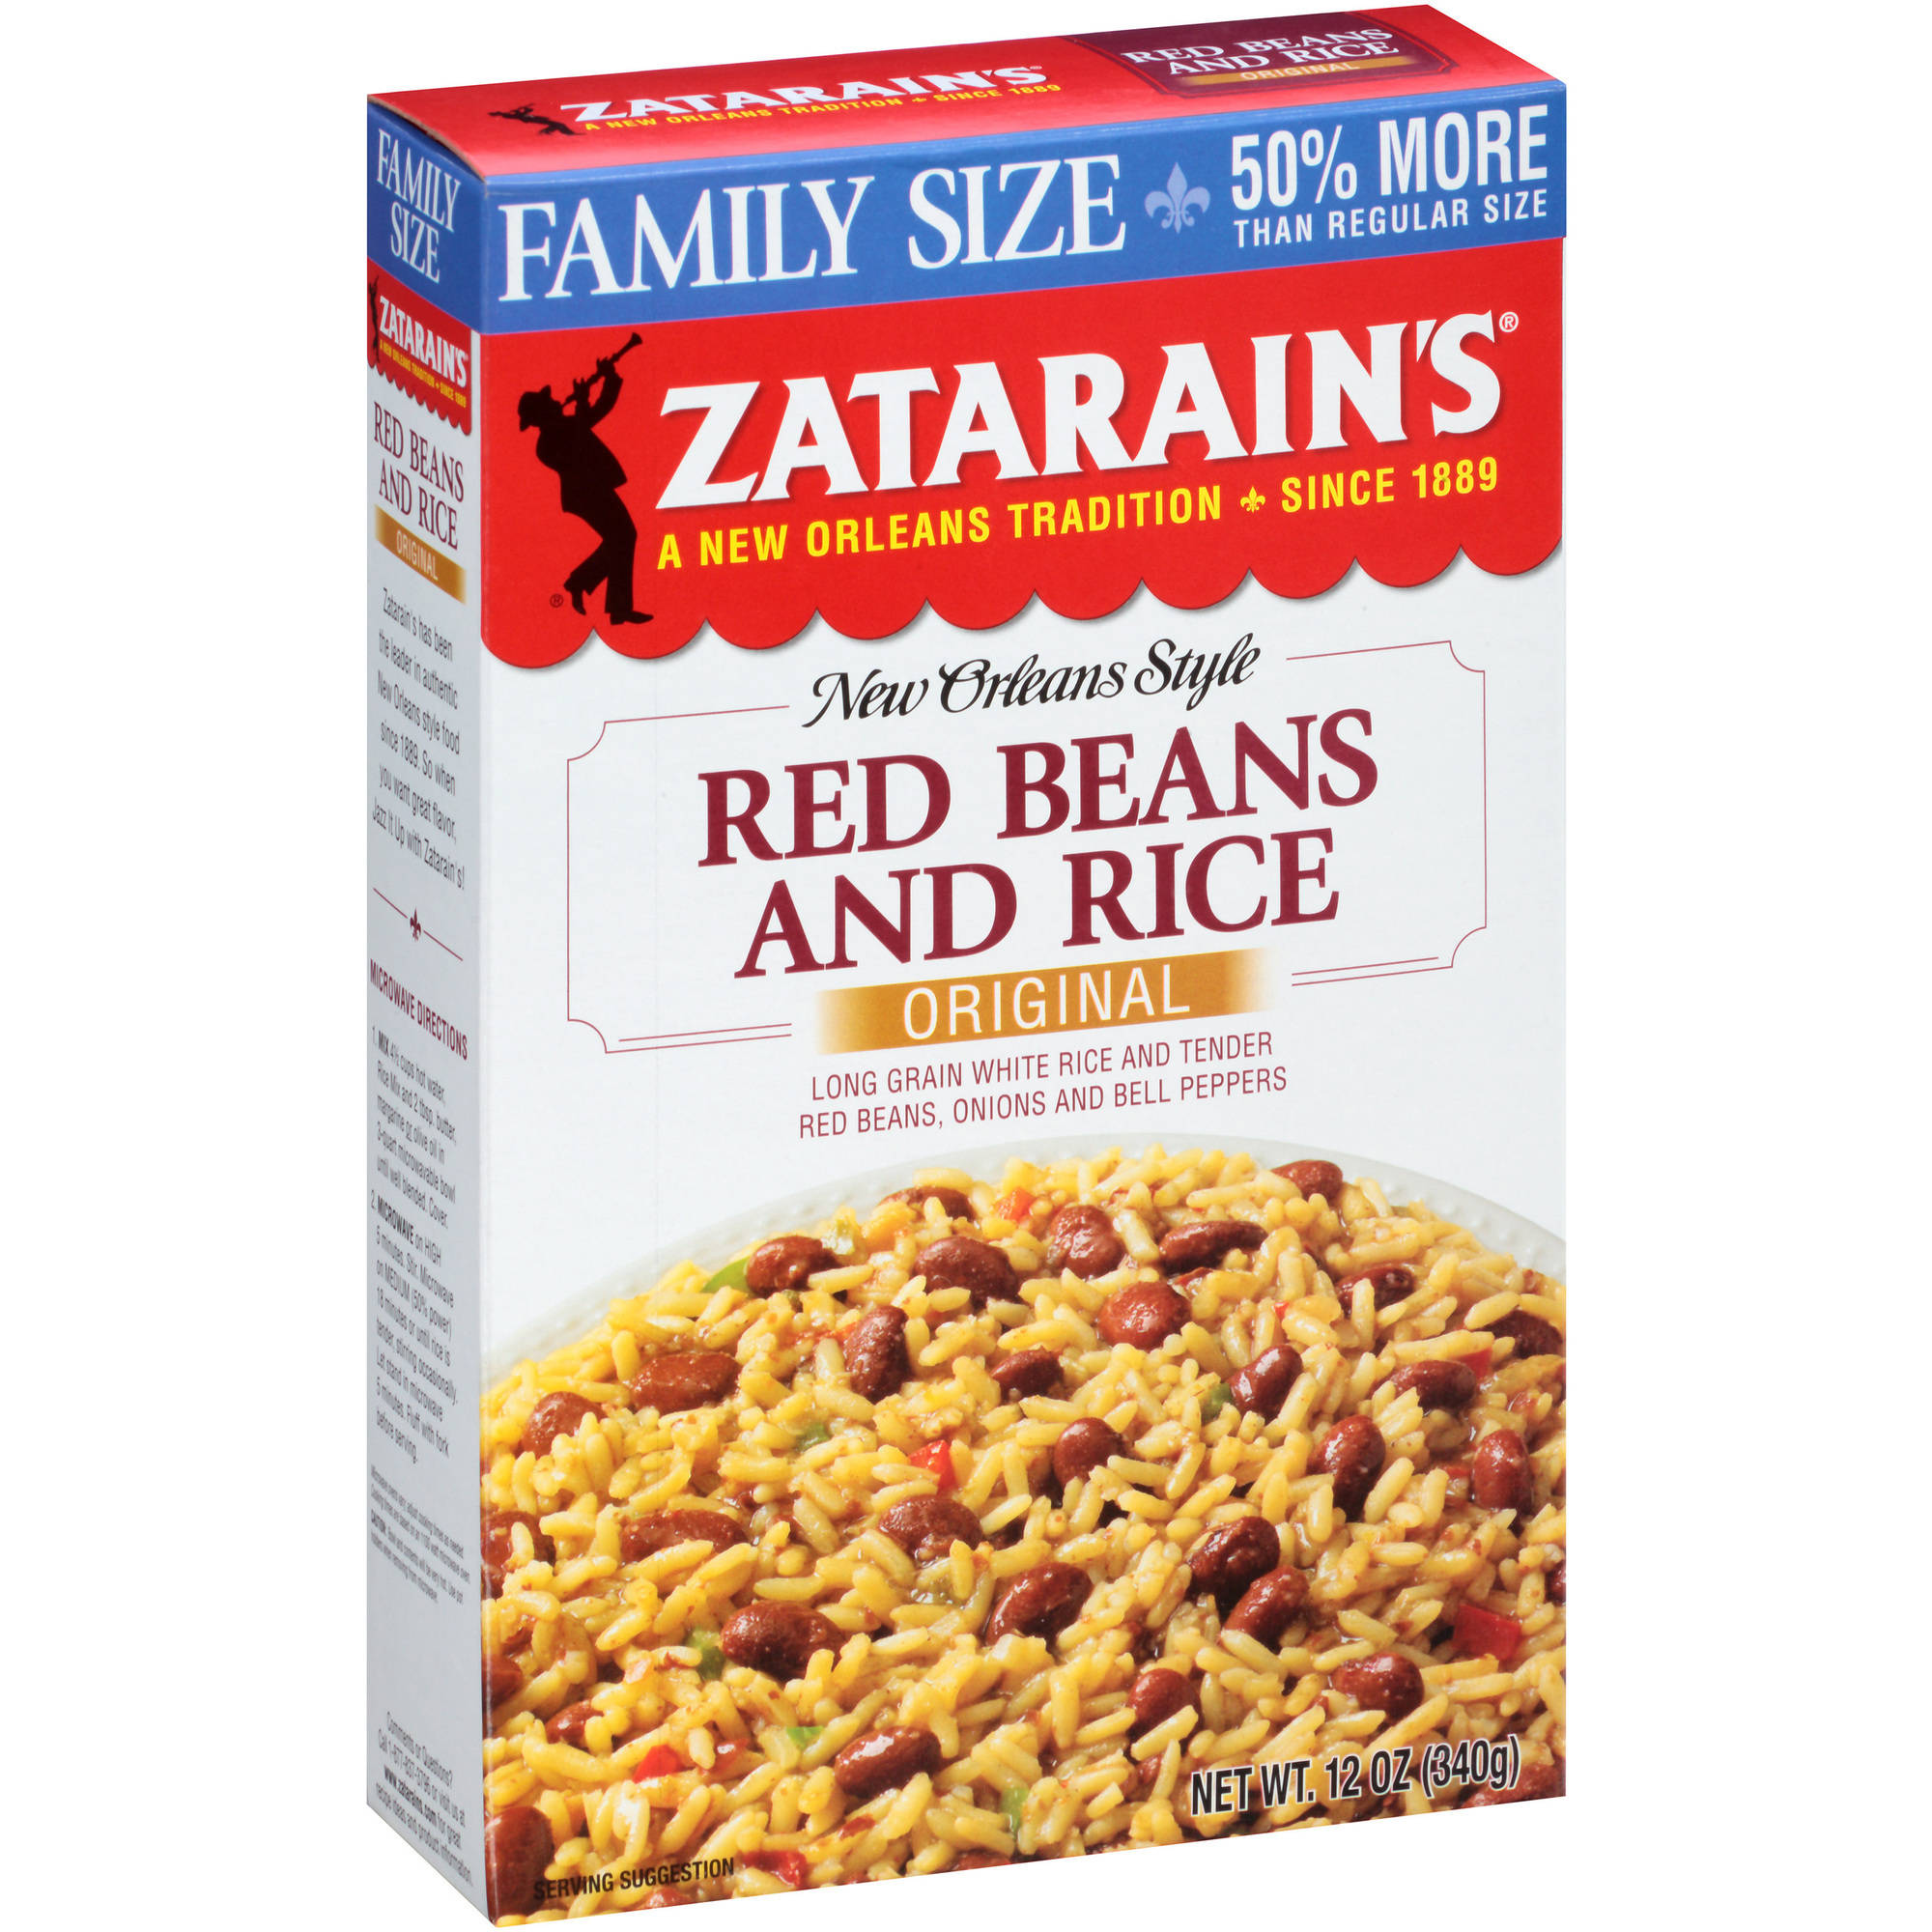 Zatarain's New Orleans Style Original Red Beans and Rice Mix, 12 oz